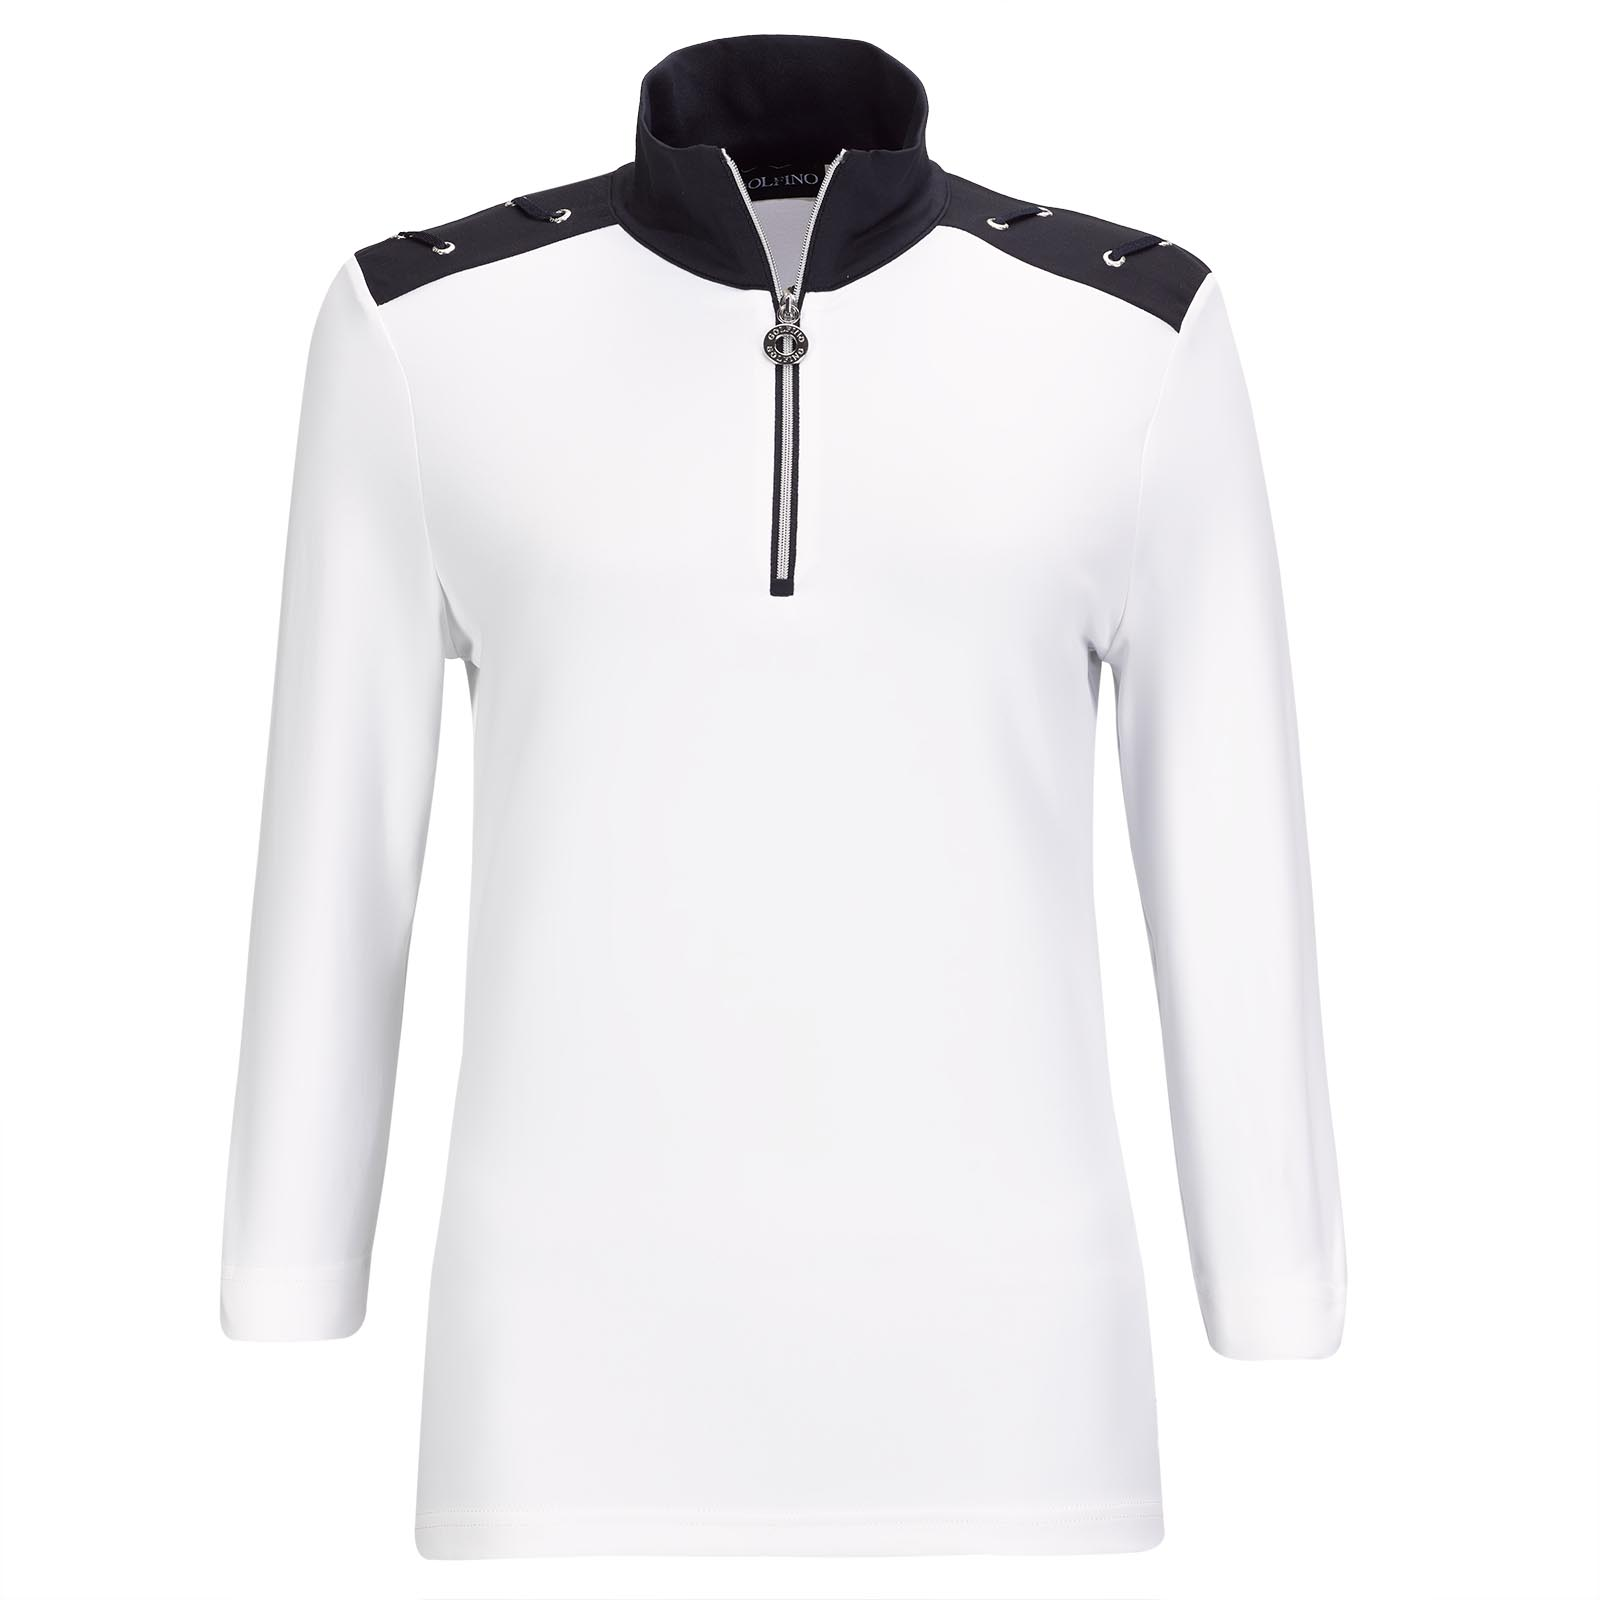 Ladies' Lycra function golf troyer with a 3/4-arm and Golfino eyelets